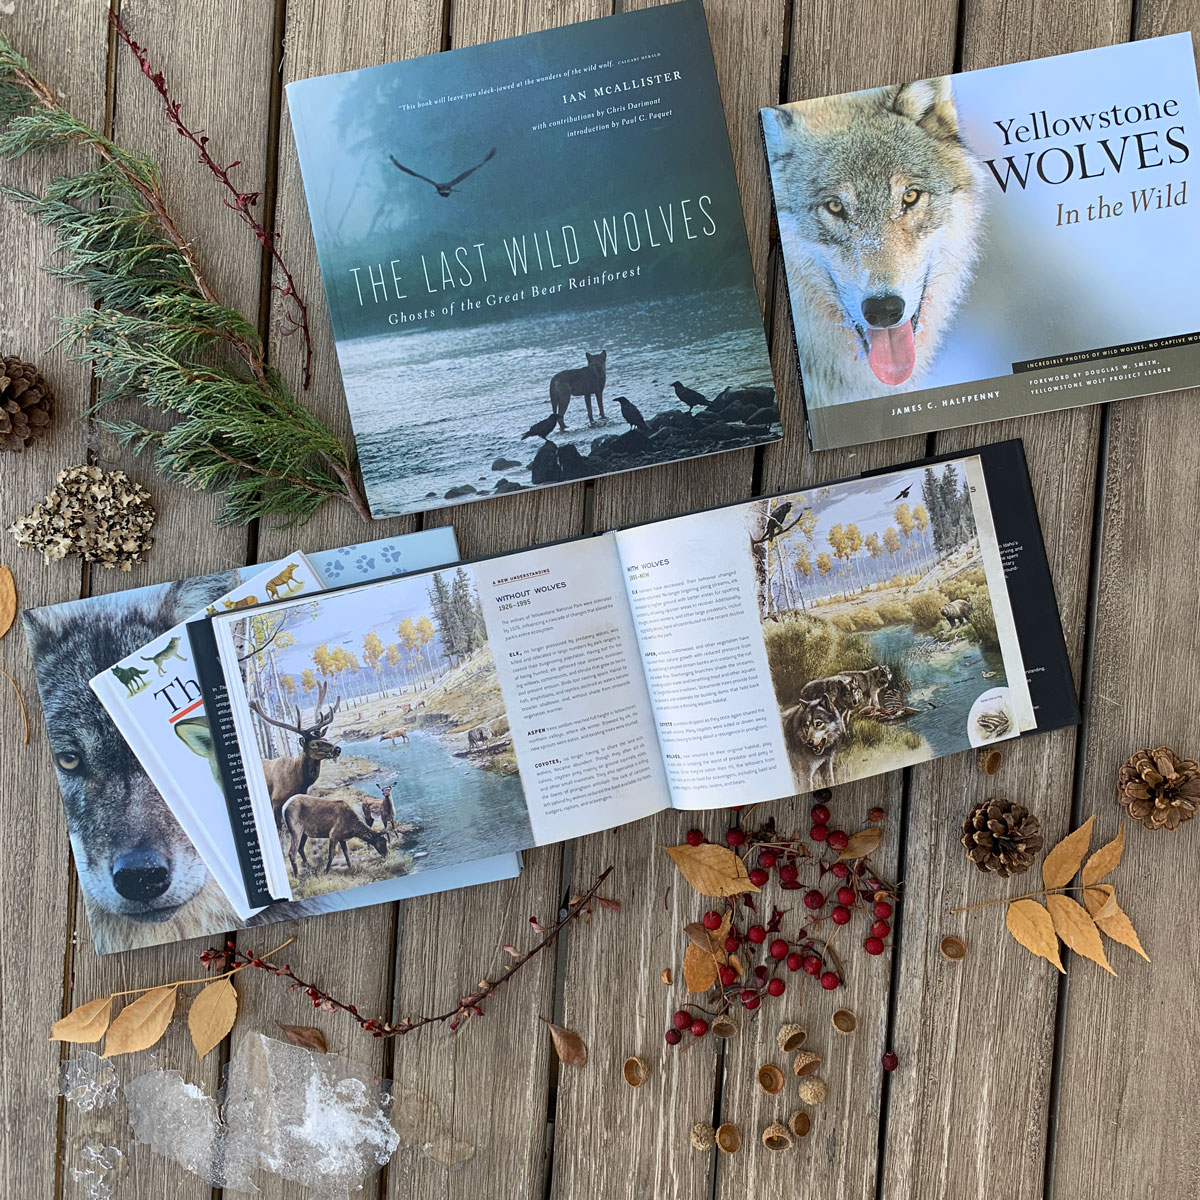 books about wolves Jim and Jamie Dutcher Ian McAllister